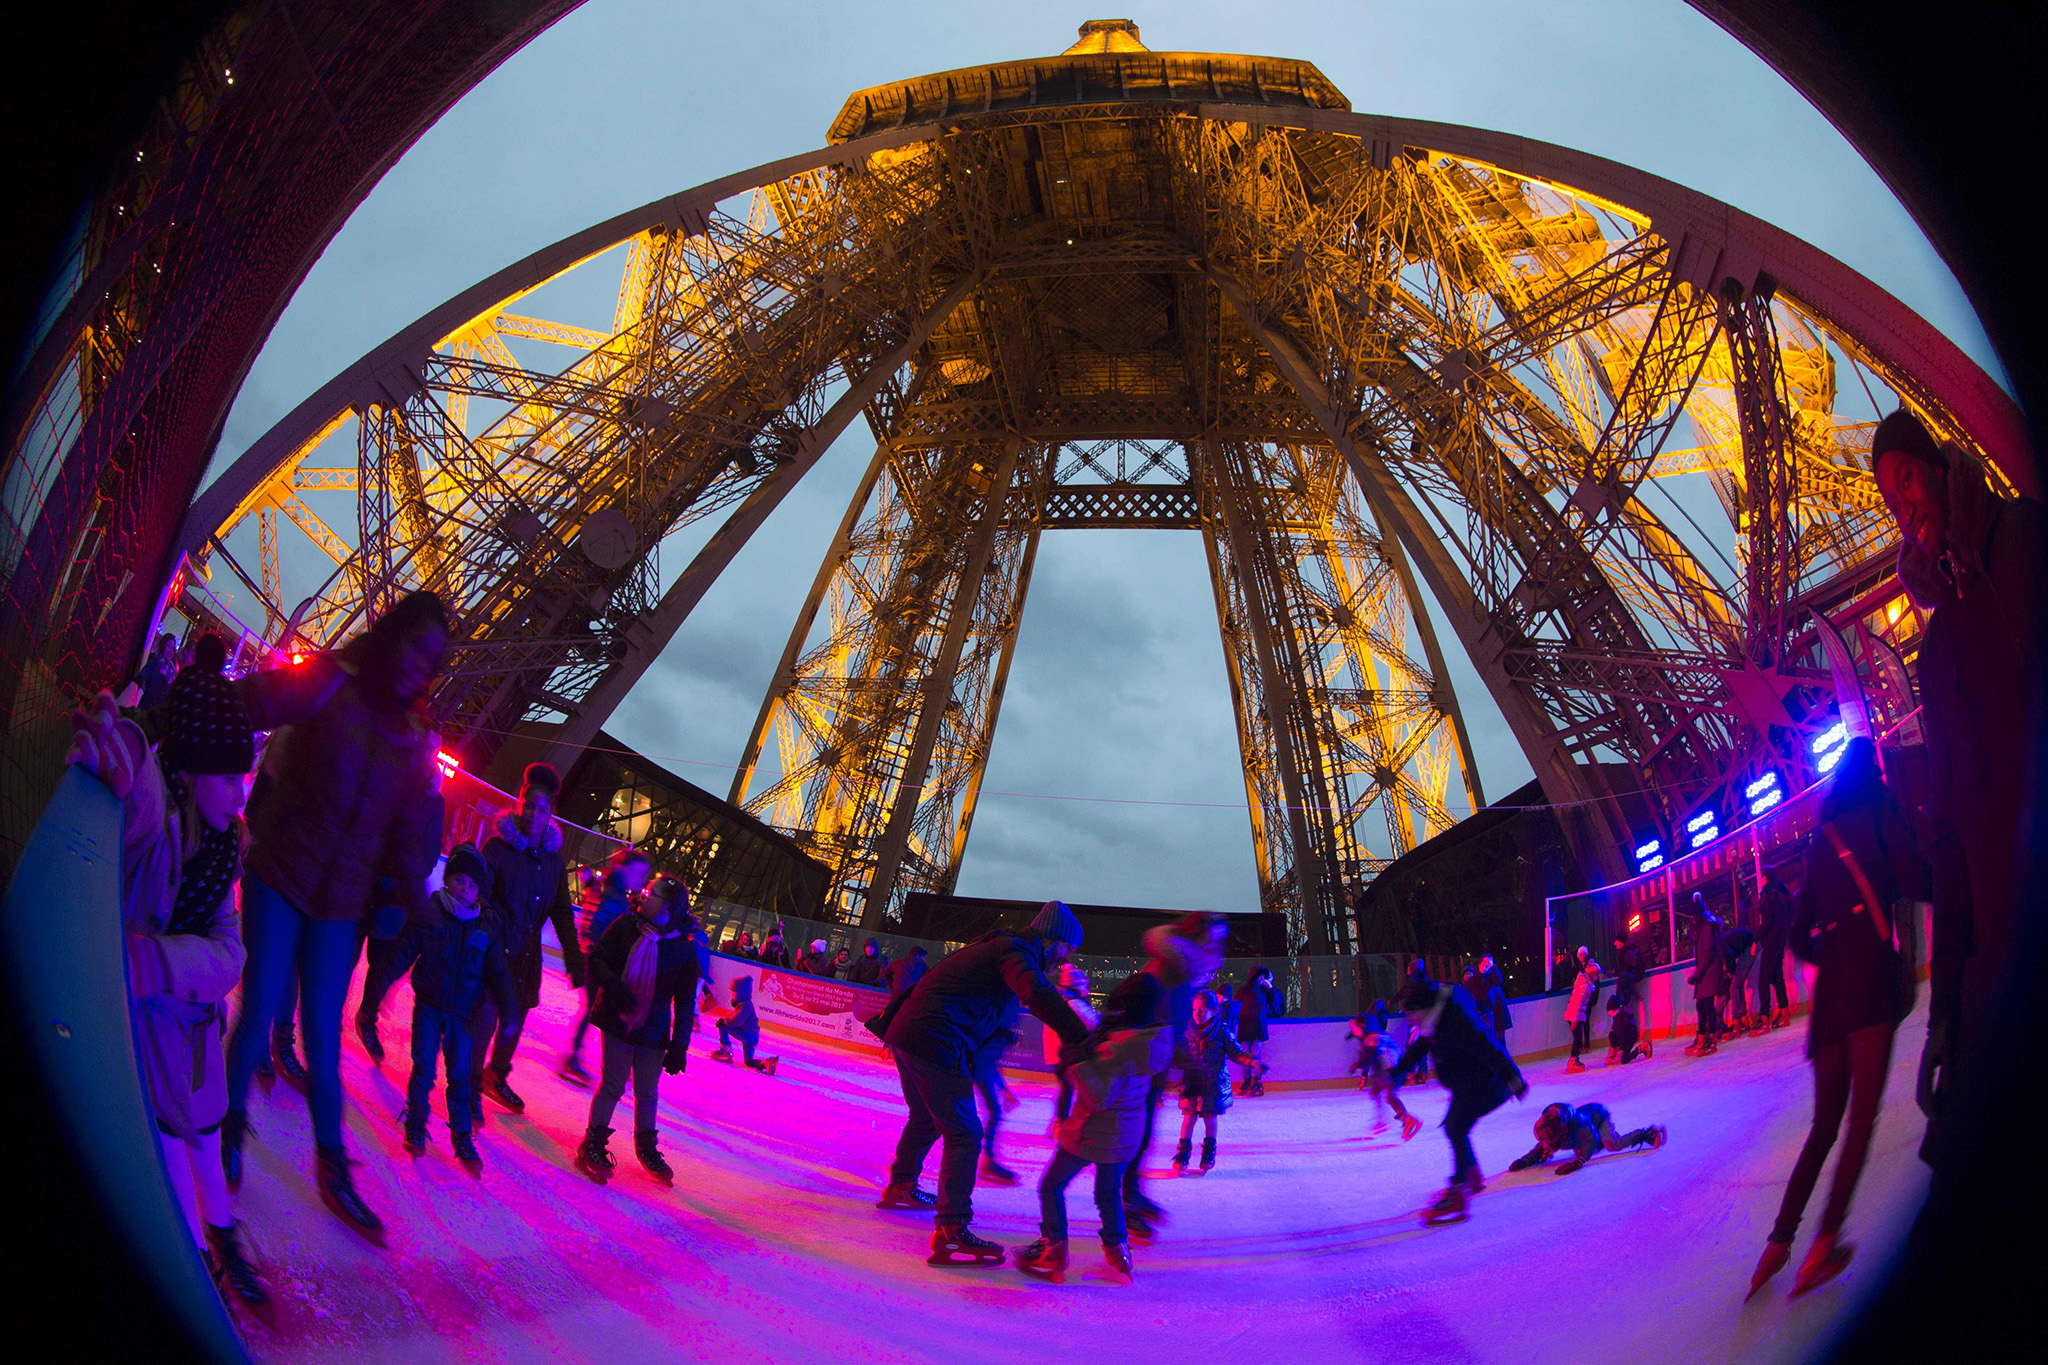 People enjoy skating at the open air Christmas ice rink on the first floor of the Eiffel Tower after its reopening on December 19, 2016 in Paris. The ice rink of about 200 square metres and on the first floor of the tower (57 metres above the ground) is open to the public until February 19, 2017. / AFP PHOTO / JOEL SAGETJOEL SAGET/AFP/Getty Images